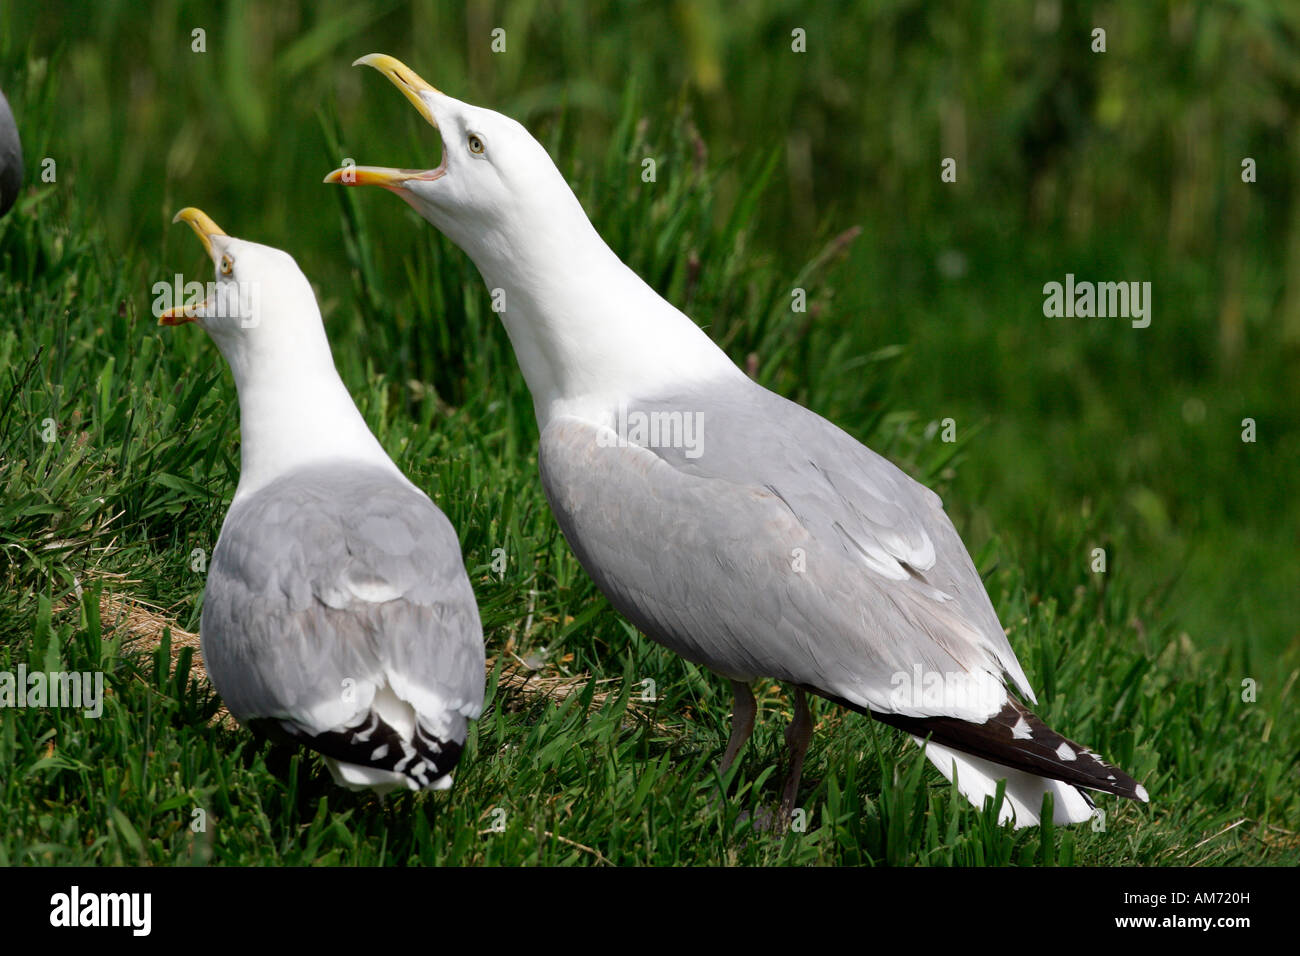 Herring gull - pair of screaming herring gulls (Larus argentatus) Stock Photo